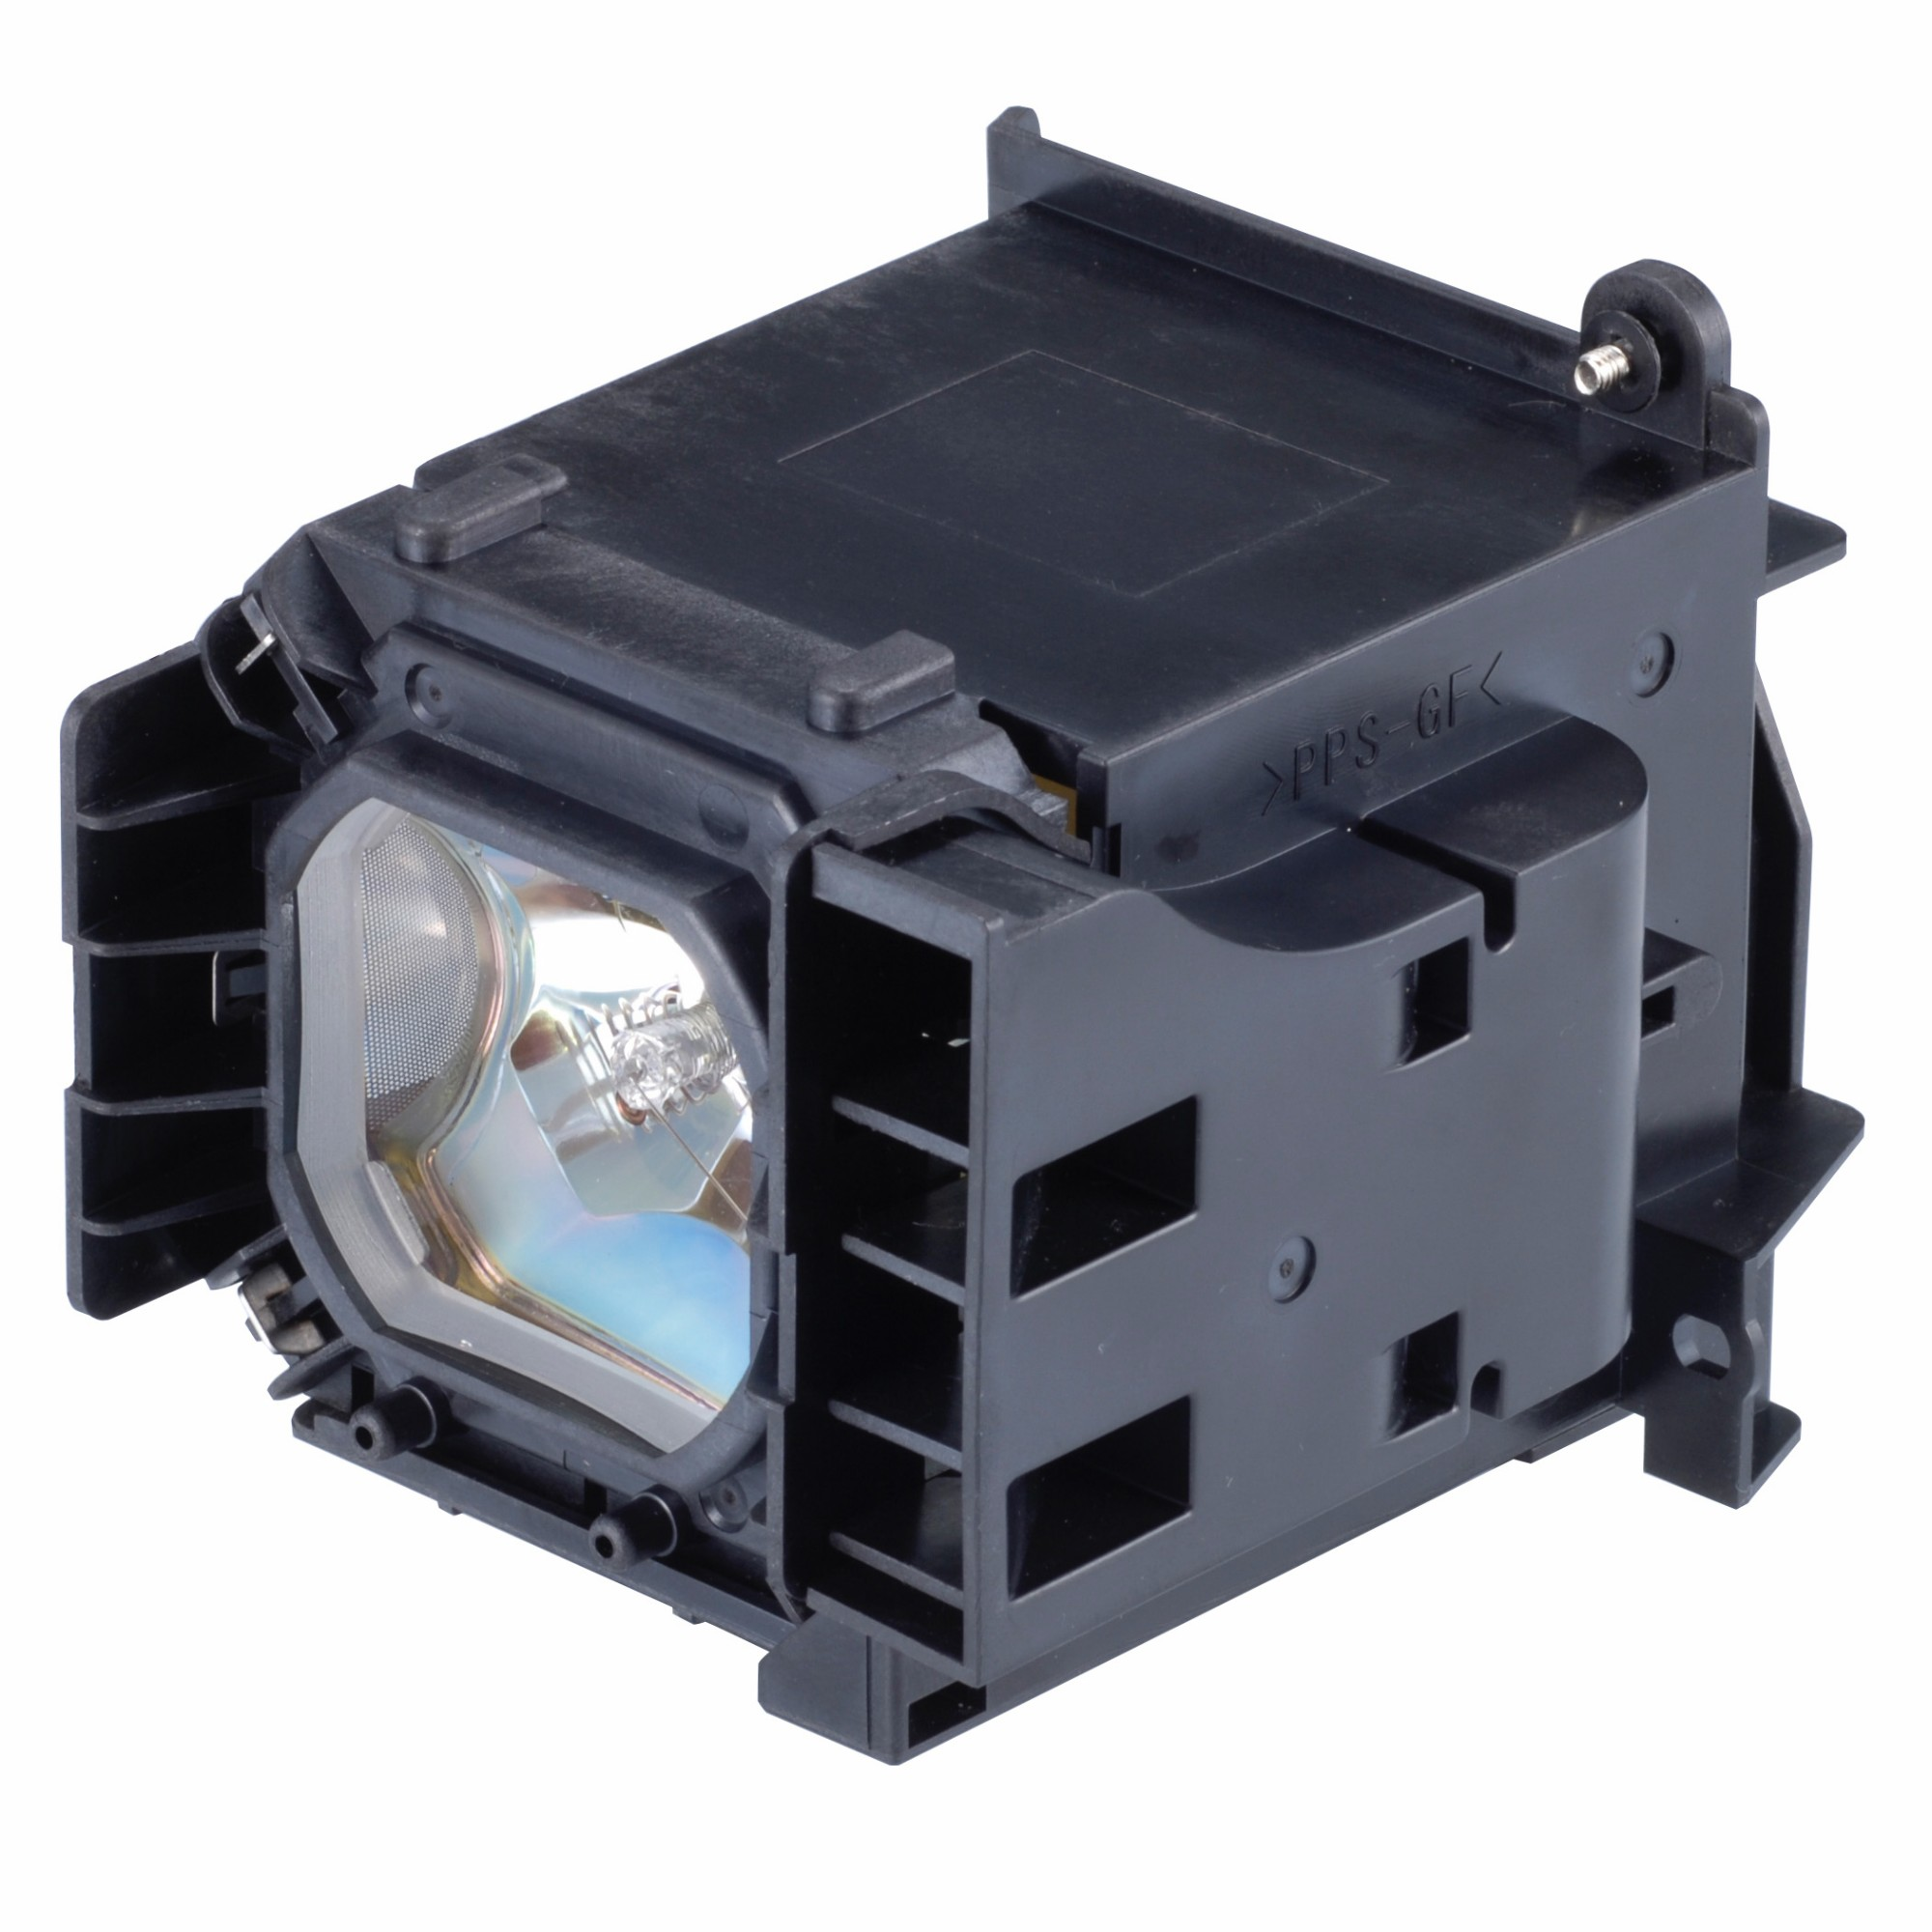 NEC NP01LP projector lamp 250 W UHP